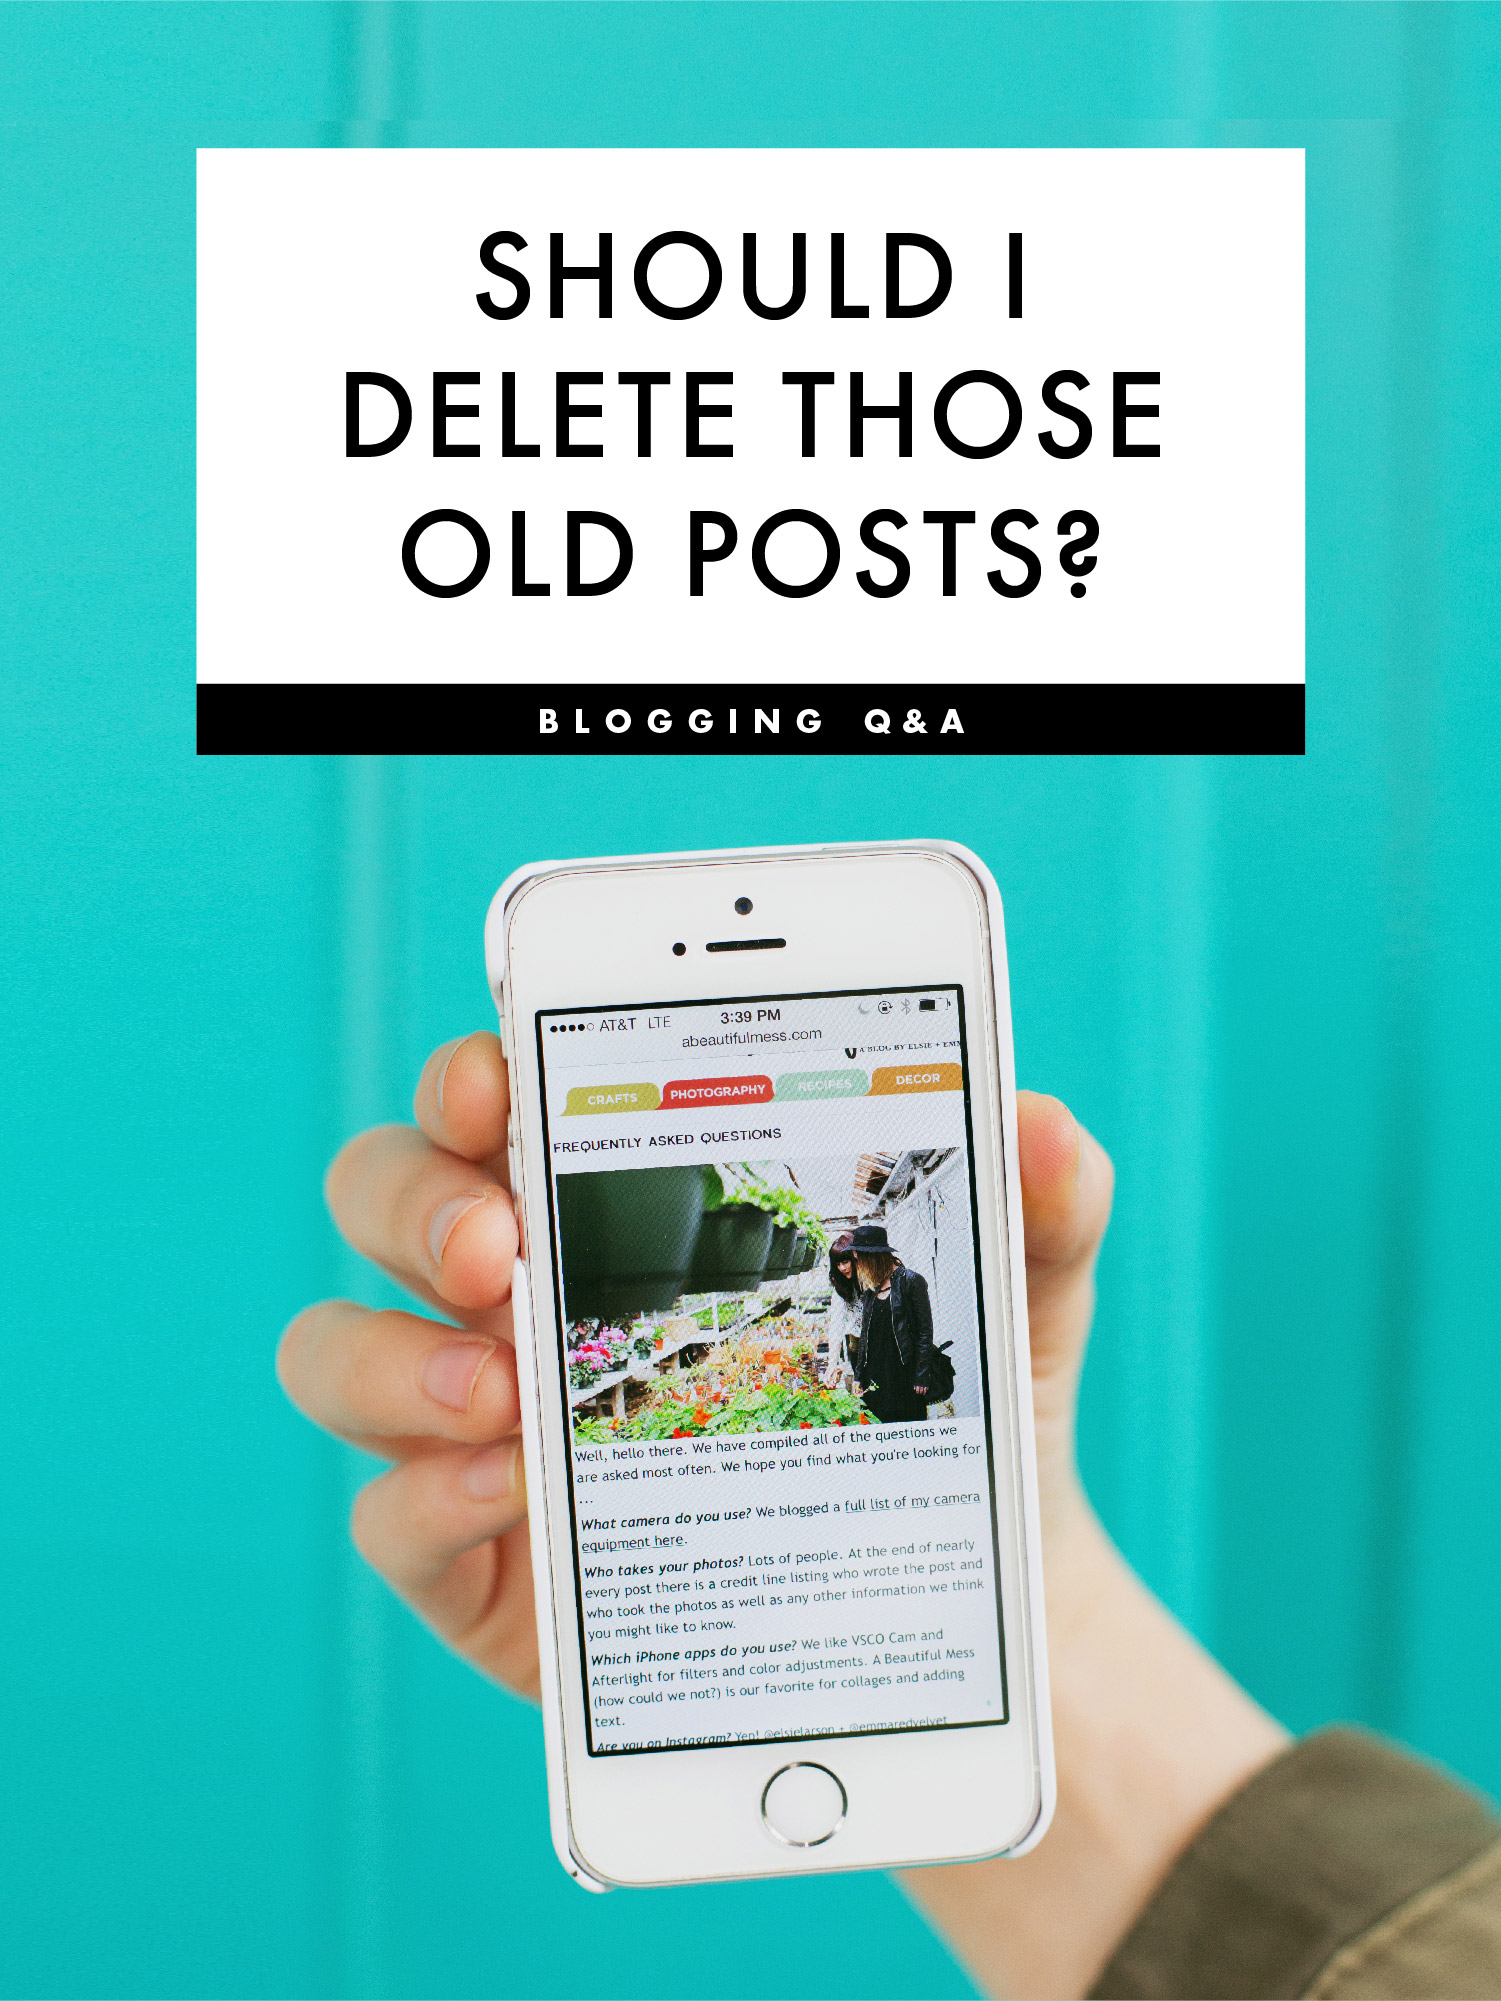 Will deleting old posts help or hurt my blog?